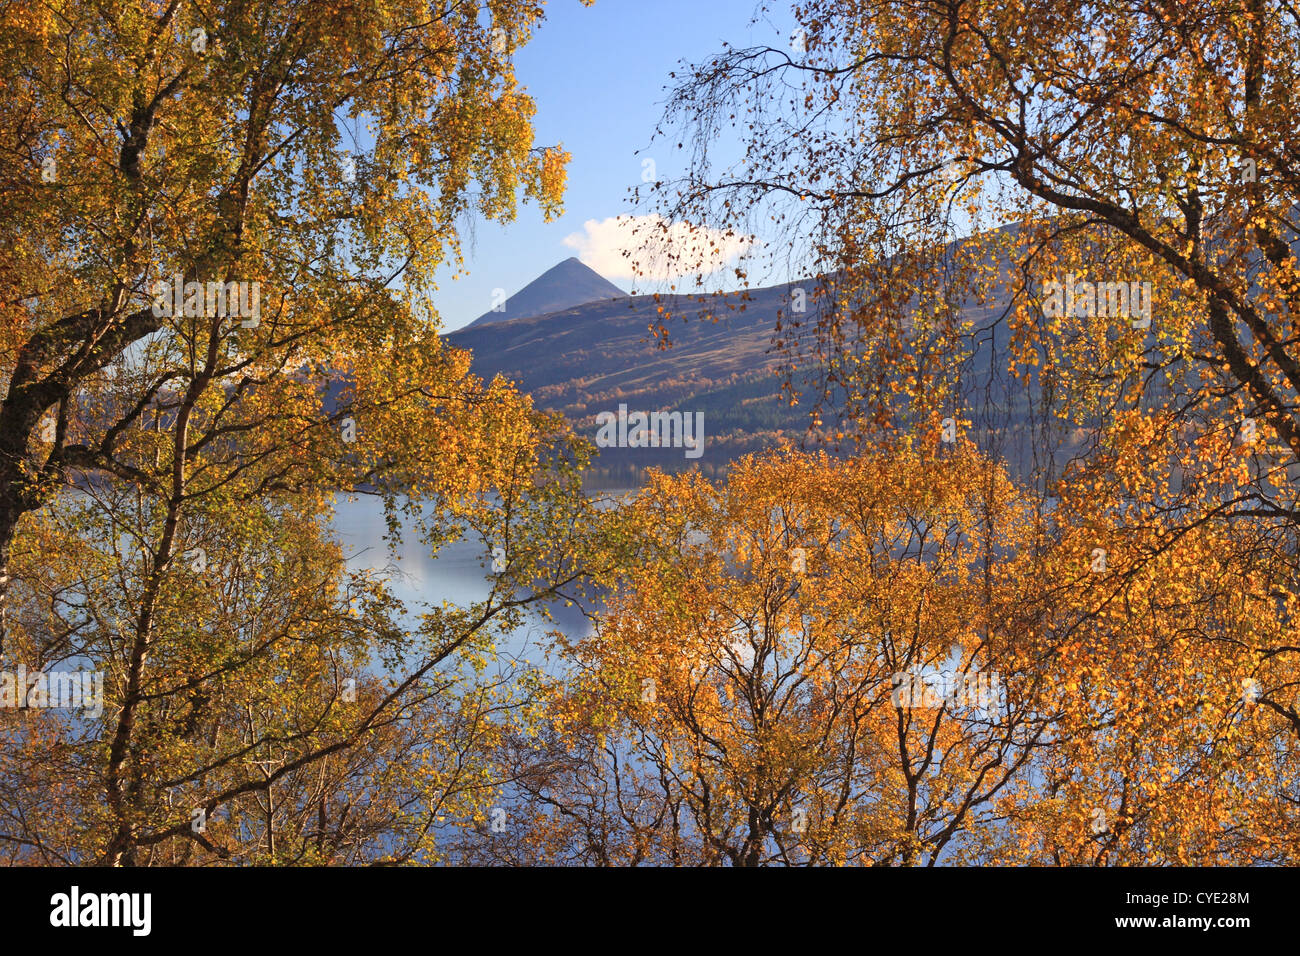 UK Scotland Tayside Perthshire Loch Rannoch and mountain of Schiehallion - Stock Image